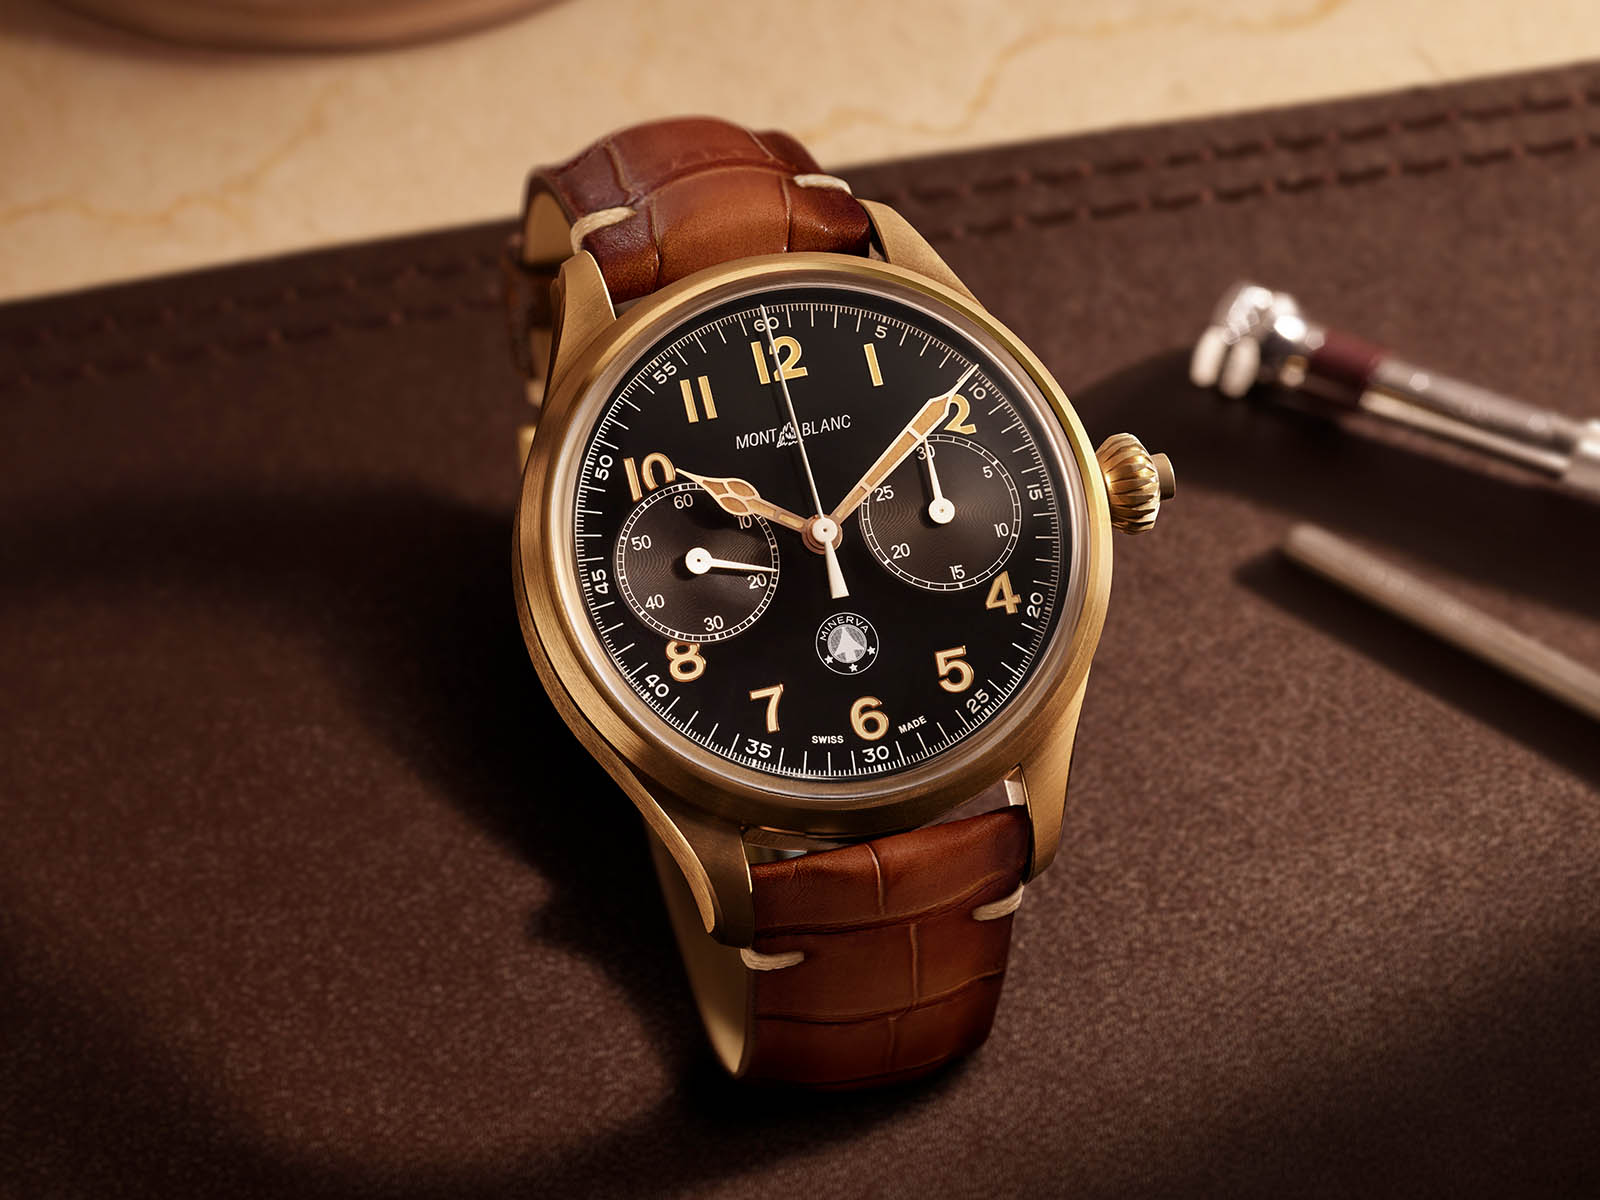 128506-montblanc-1858-monopusher-chronograph-origins-limited-edition-100-1.jpg